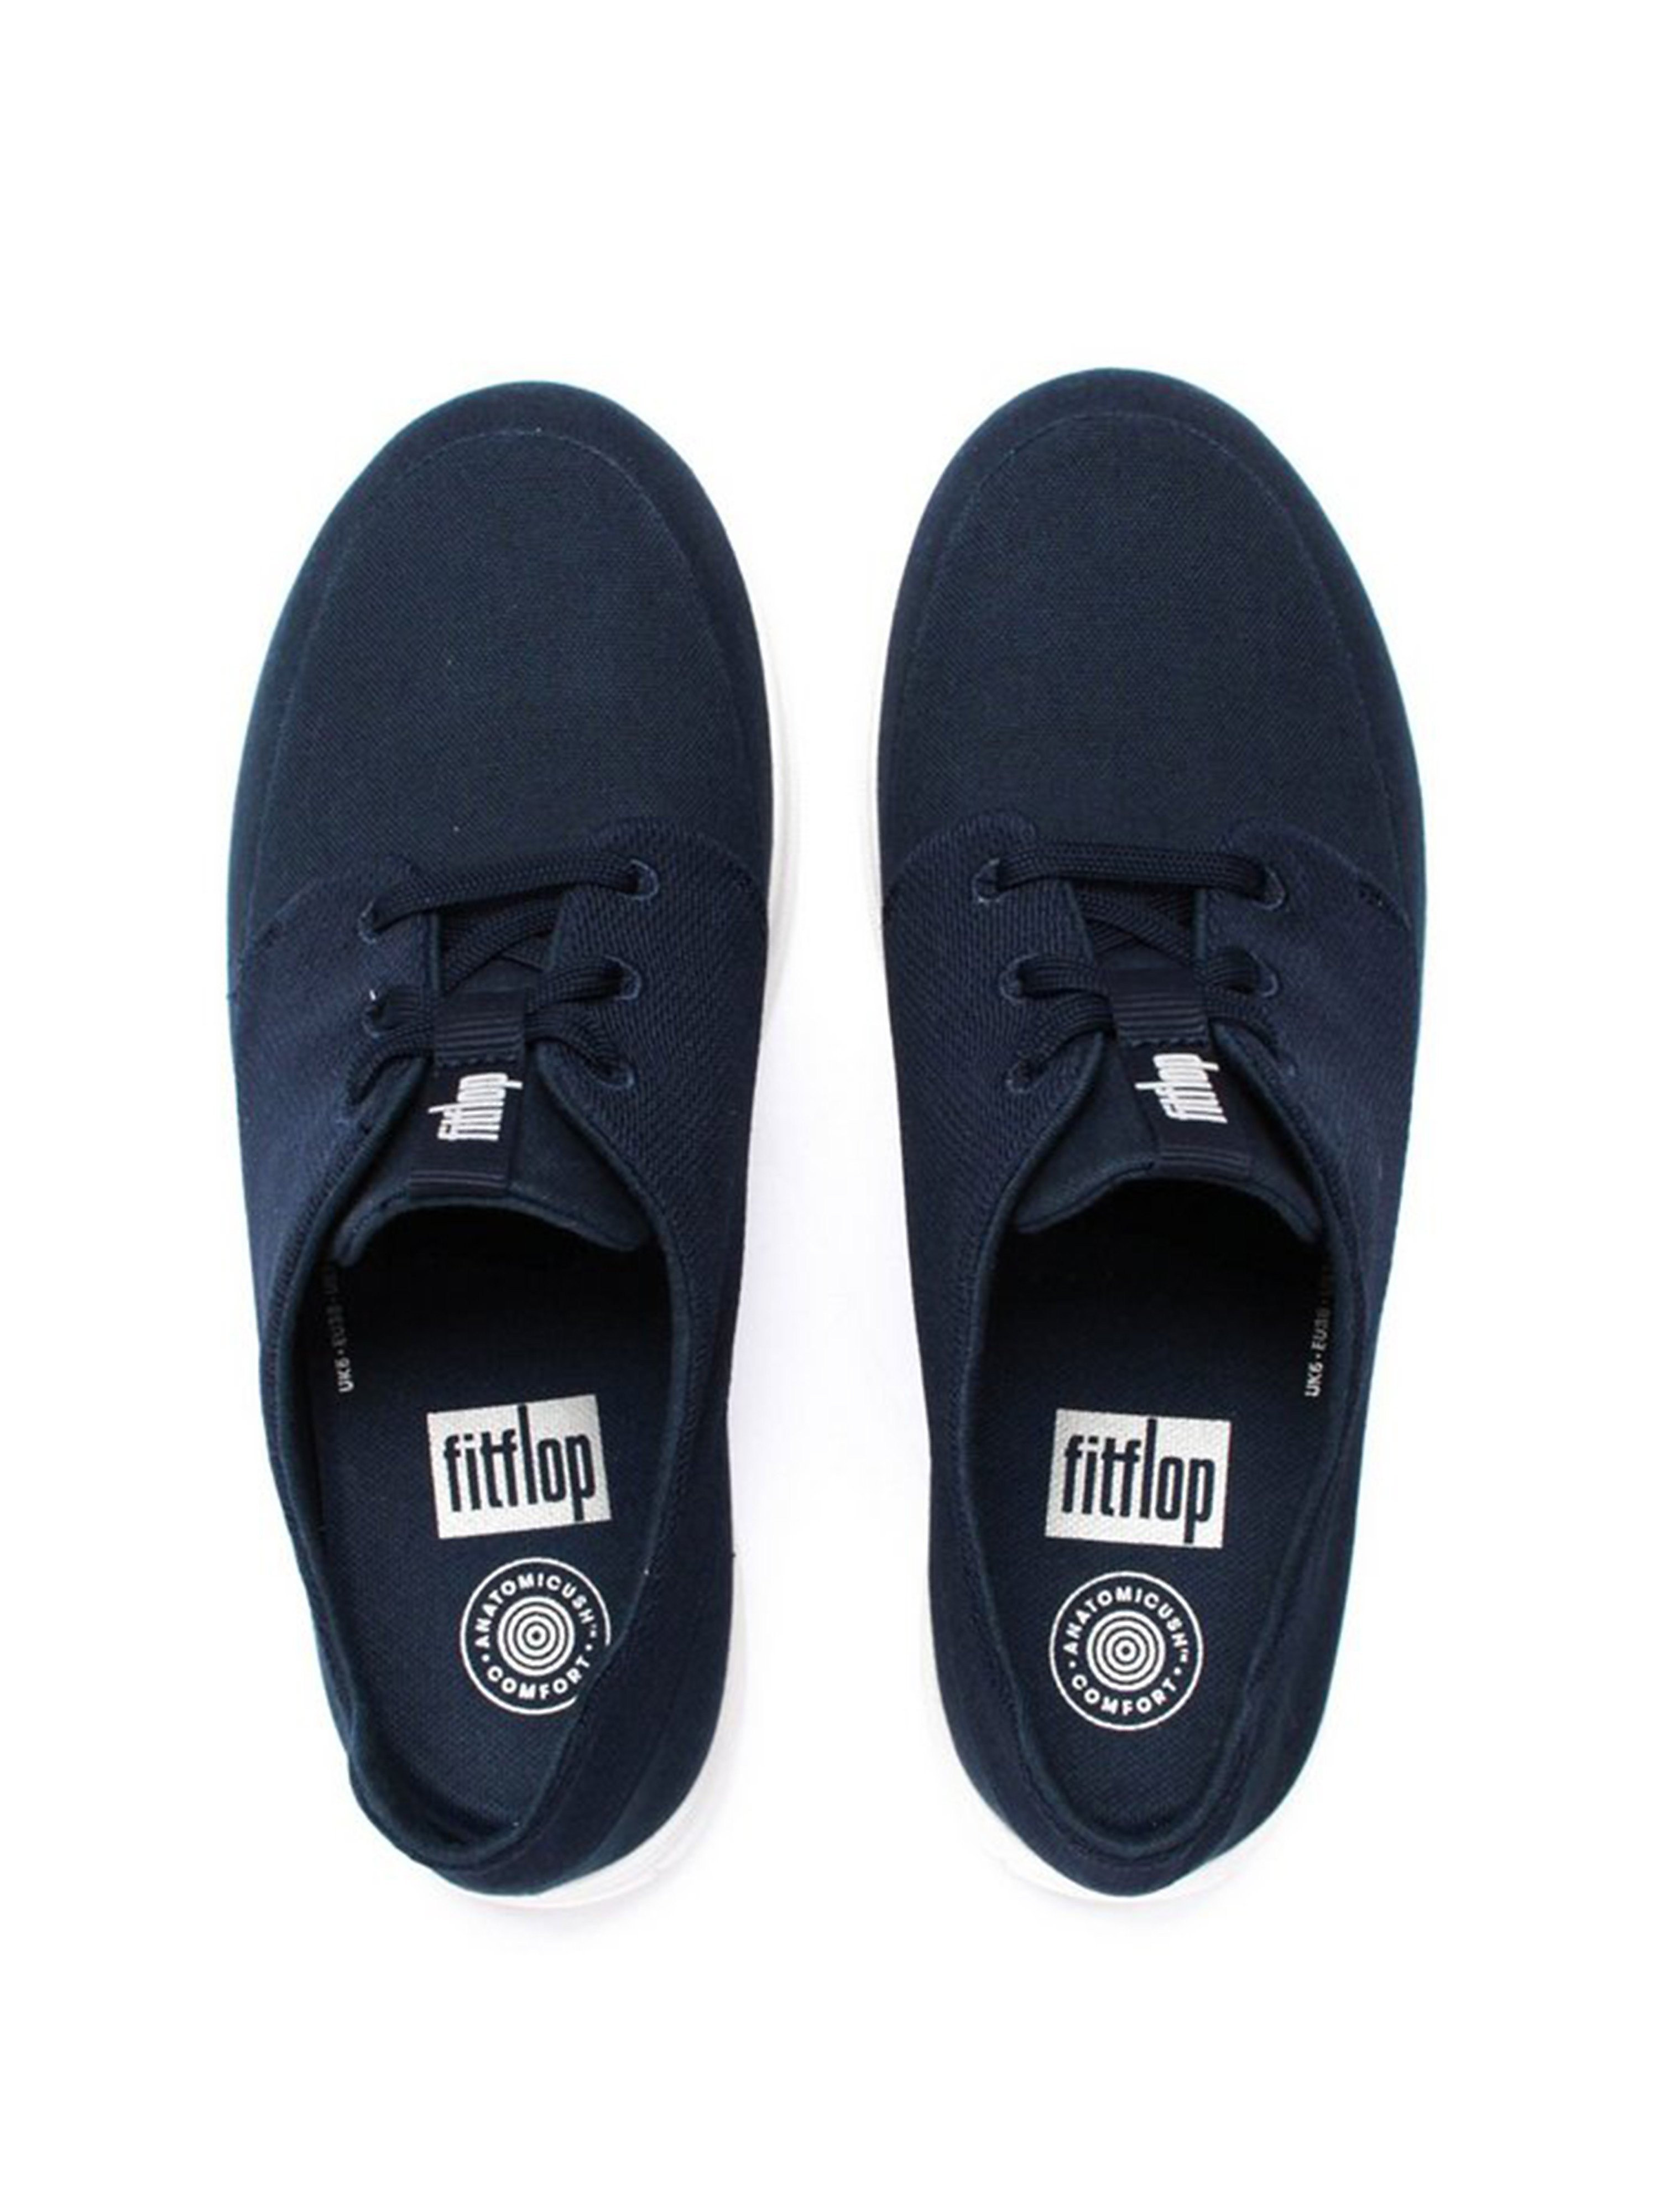 FitFlop Sporty-Pop™ Navy Canvas Softy Sneakers